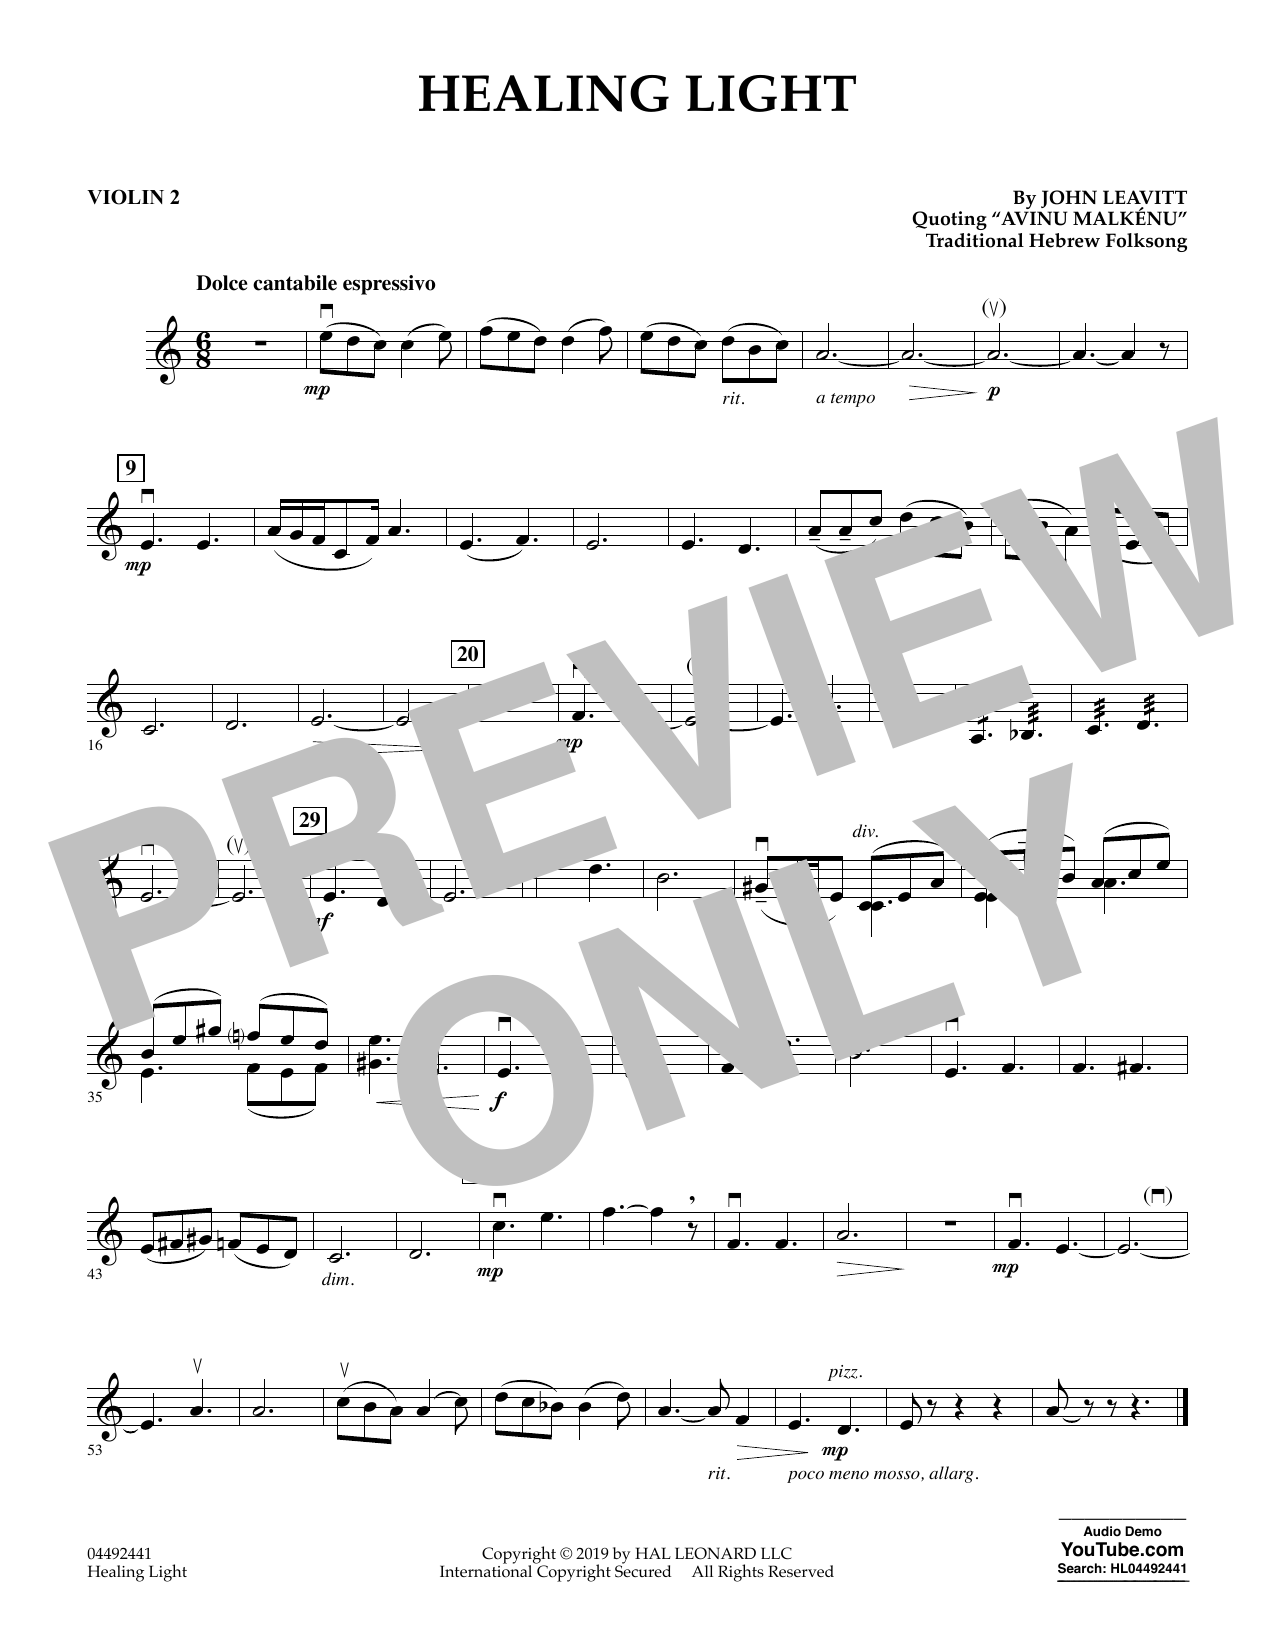 John Leavitt Healing Light - Violin 2 sheet music preview music notes and score for Orchestra including 1 page(s)